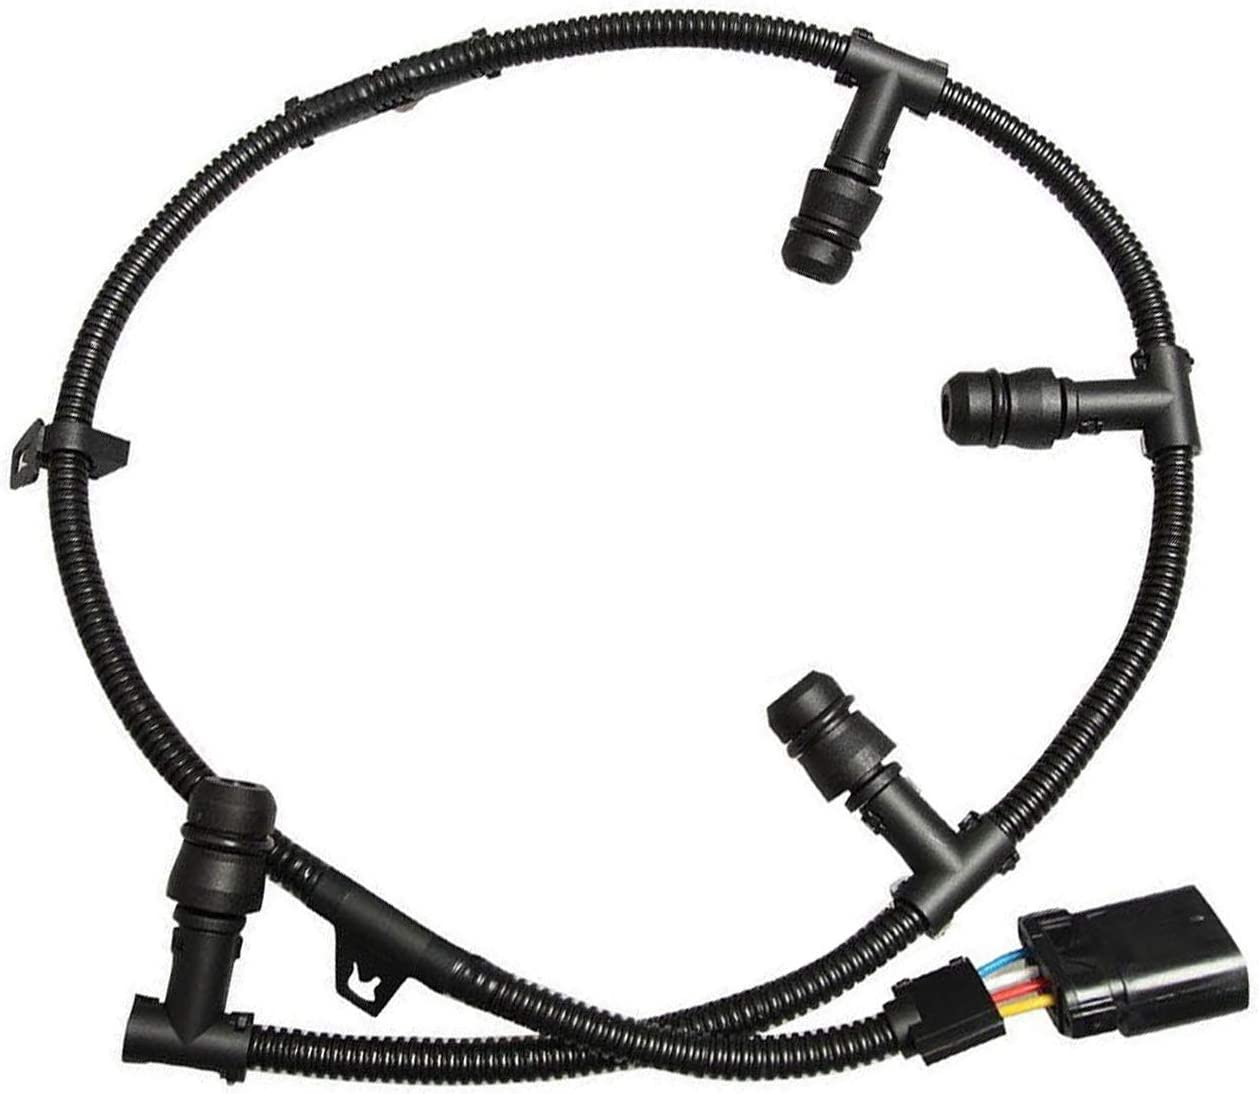 BETTERCLOUD Glow Plug Wire Harness Include 8 Glow Plugs 6.0l Powerstroke Fit for 2003 Ford F250 F350 3C3Z-12A690-AA 12A690 3C3Z12A690AA